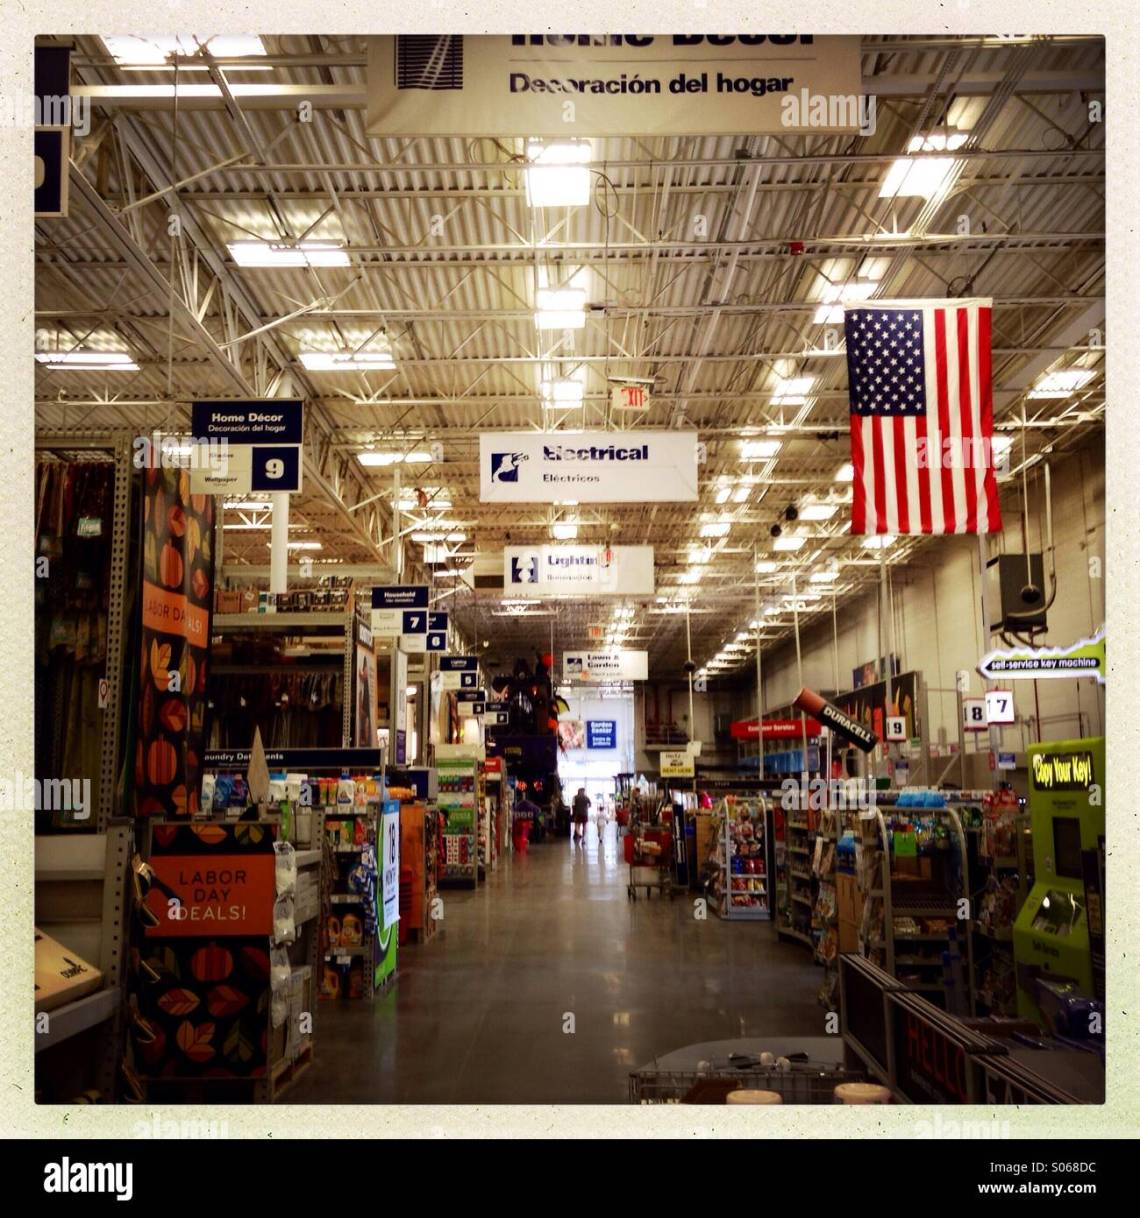 Lowes Home Improvement Store Stock Photo Alamy